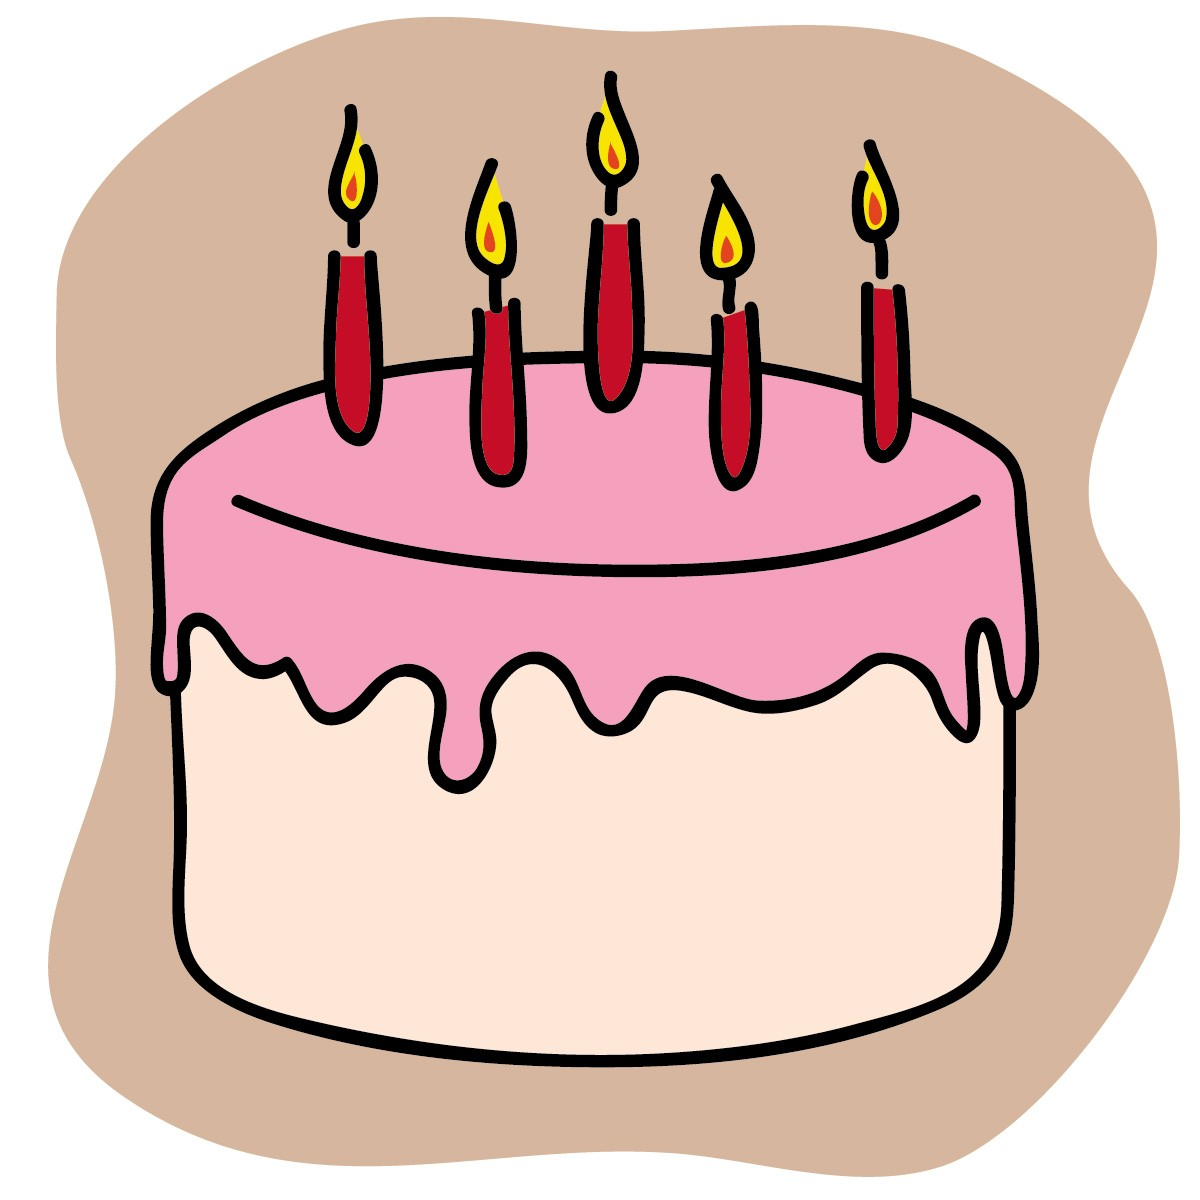 Cake Images Clip Art : Iron Cake Candle Cake Ideas and Designs